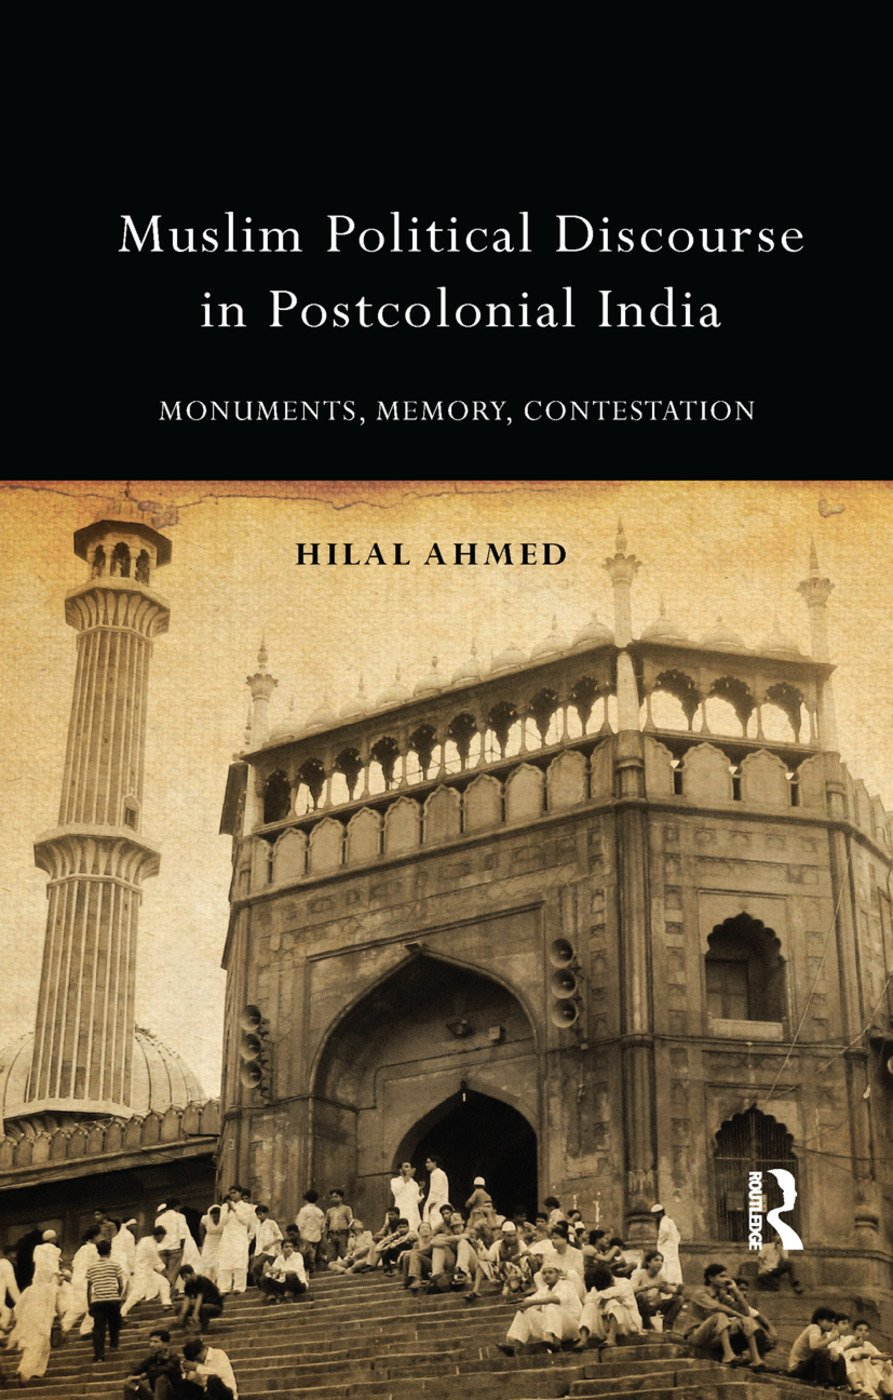 Muslim Political Discourse in Postcolonial India: Monuments, Memory, Contestation, 1st Edition (Paperback) book cover